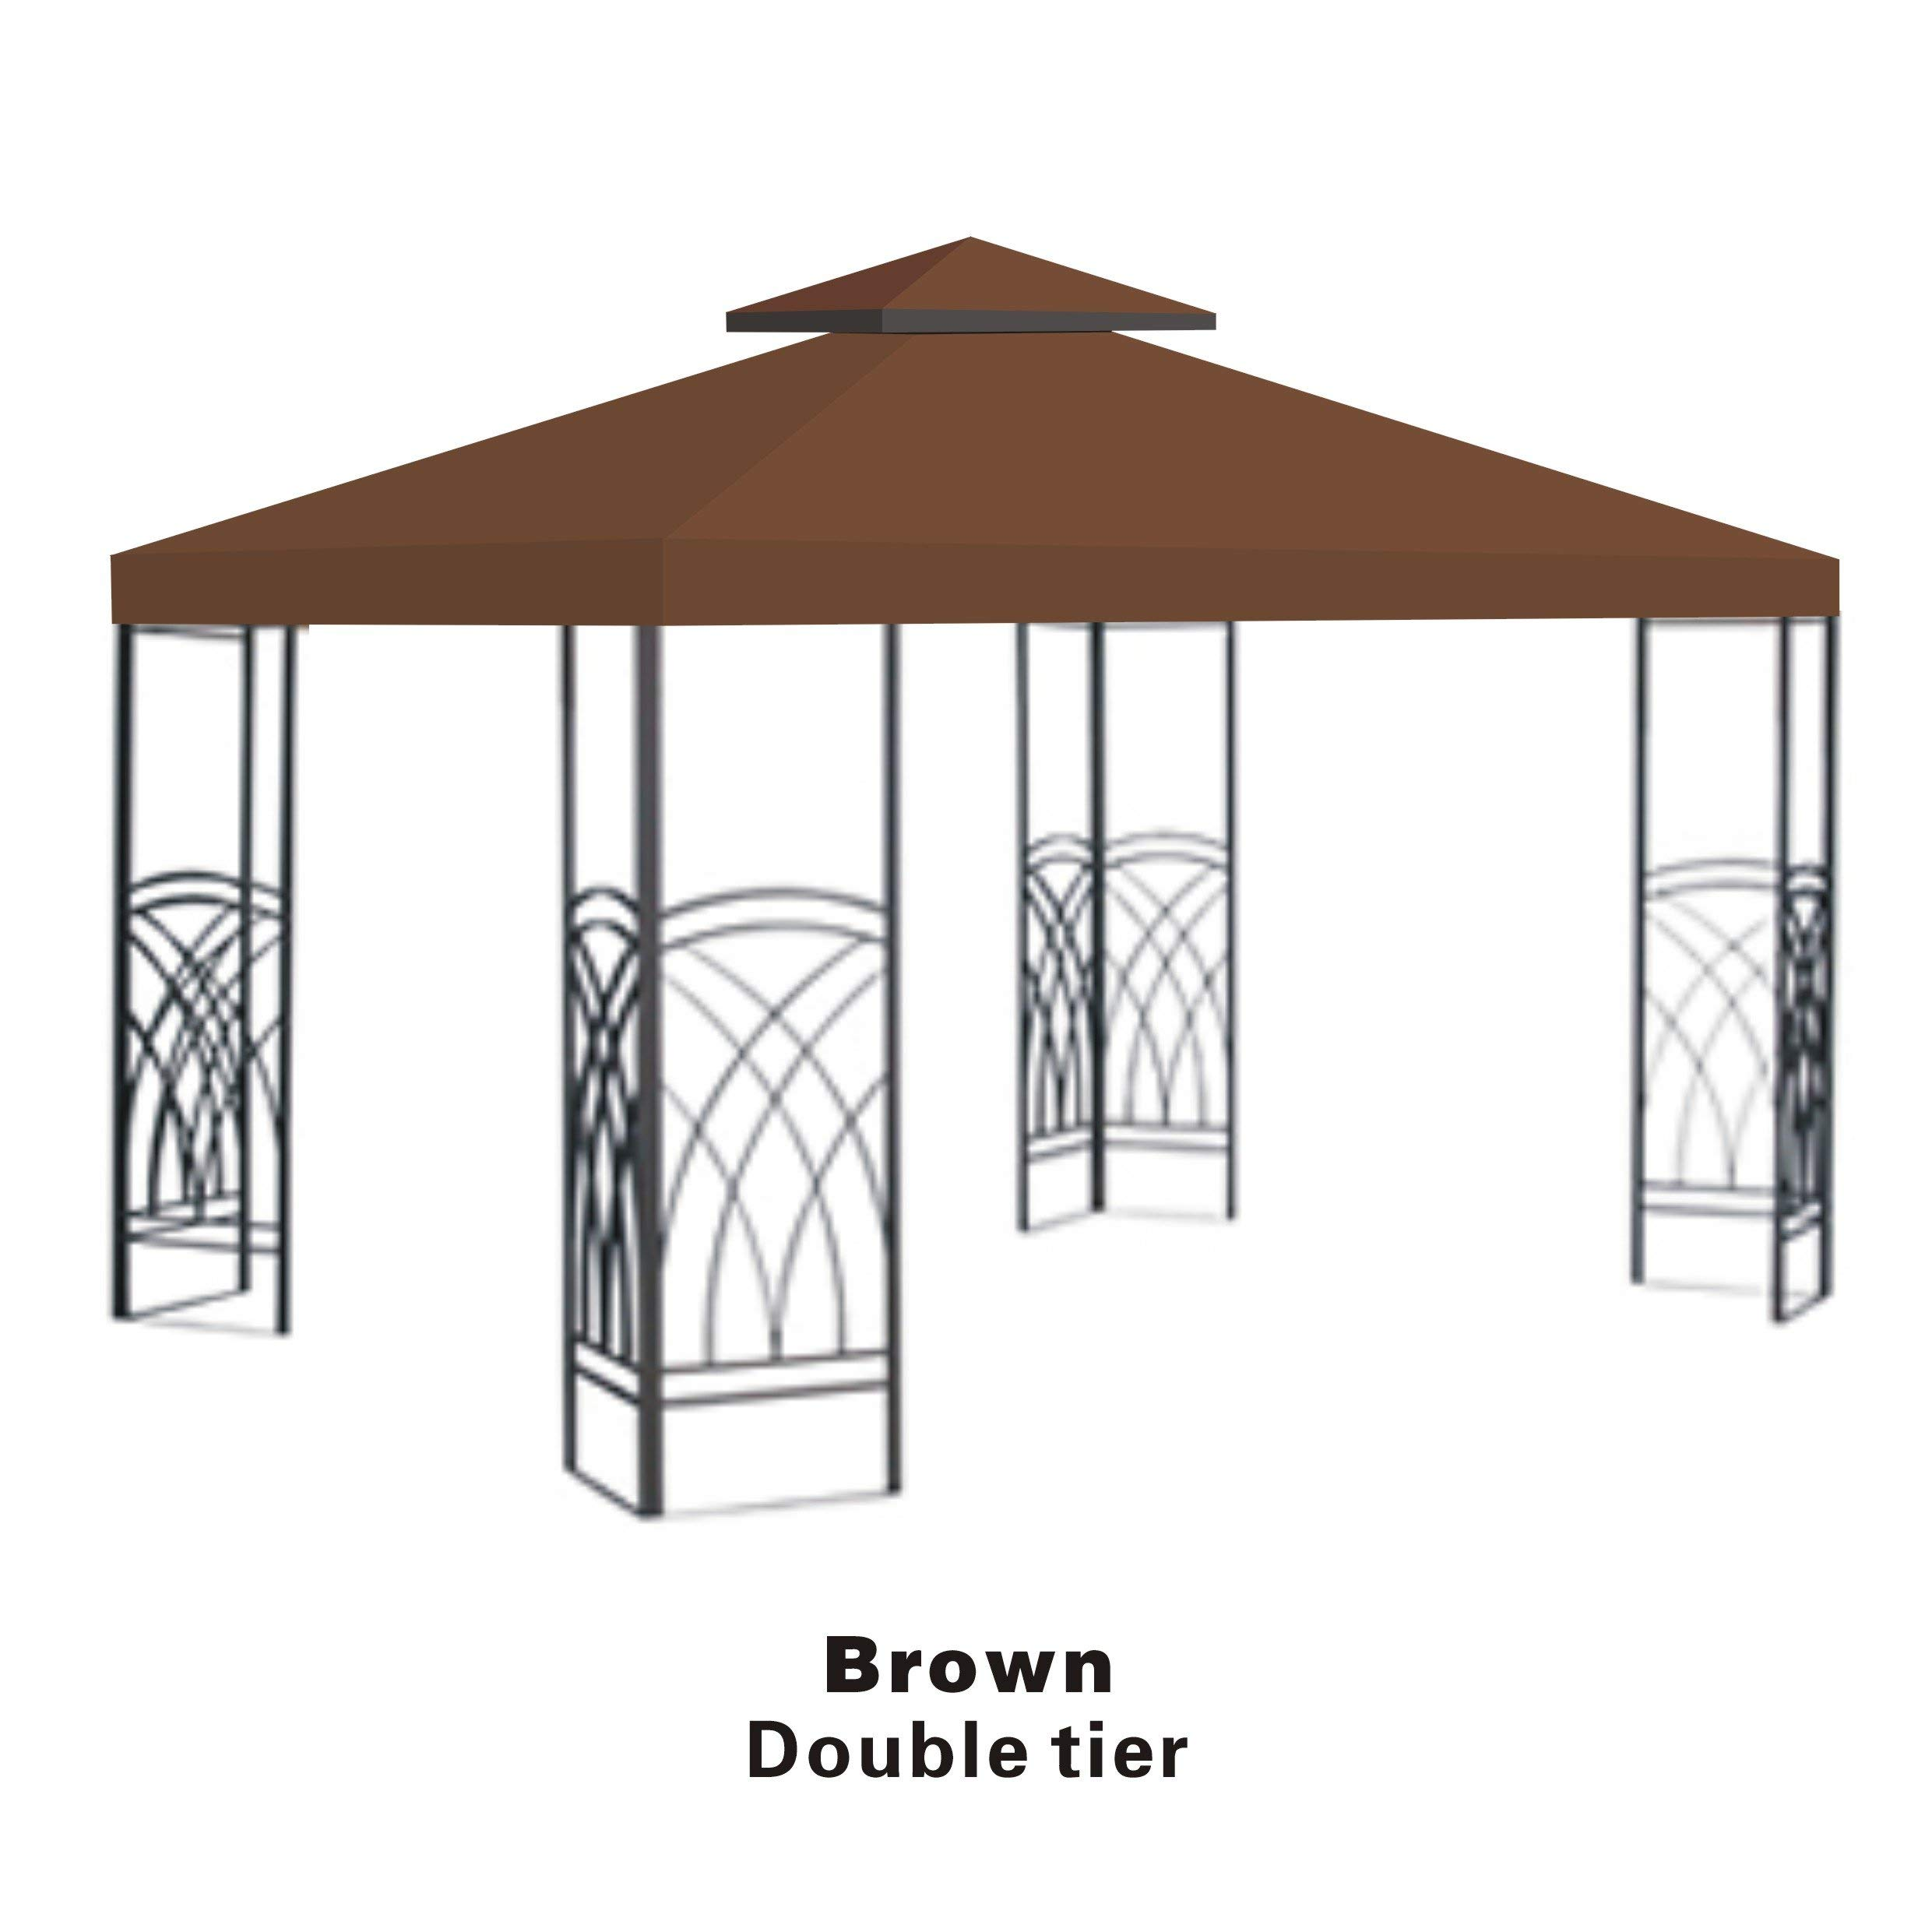 BenefitUSA BROWN Double tier Replacement 10'X10'gazebo canopy top patio pavilion cover sunshade plyester